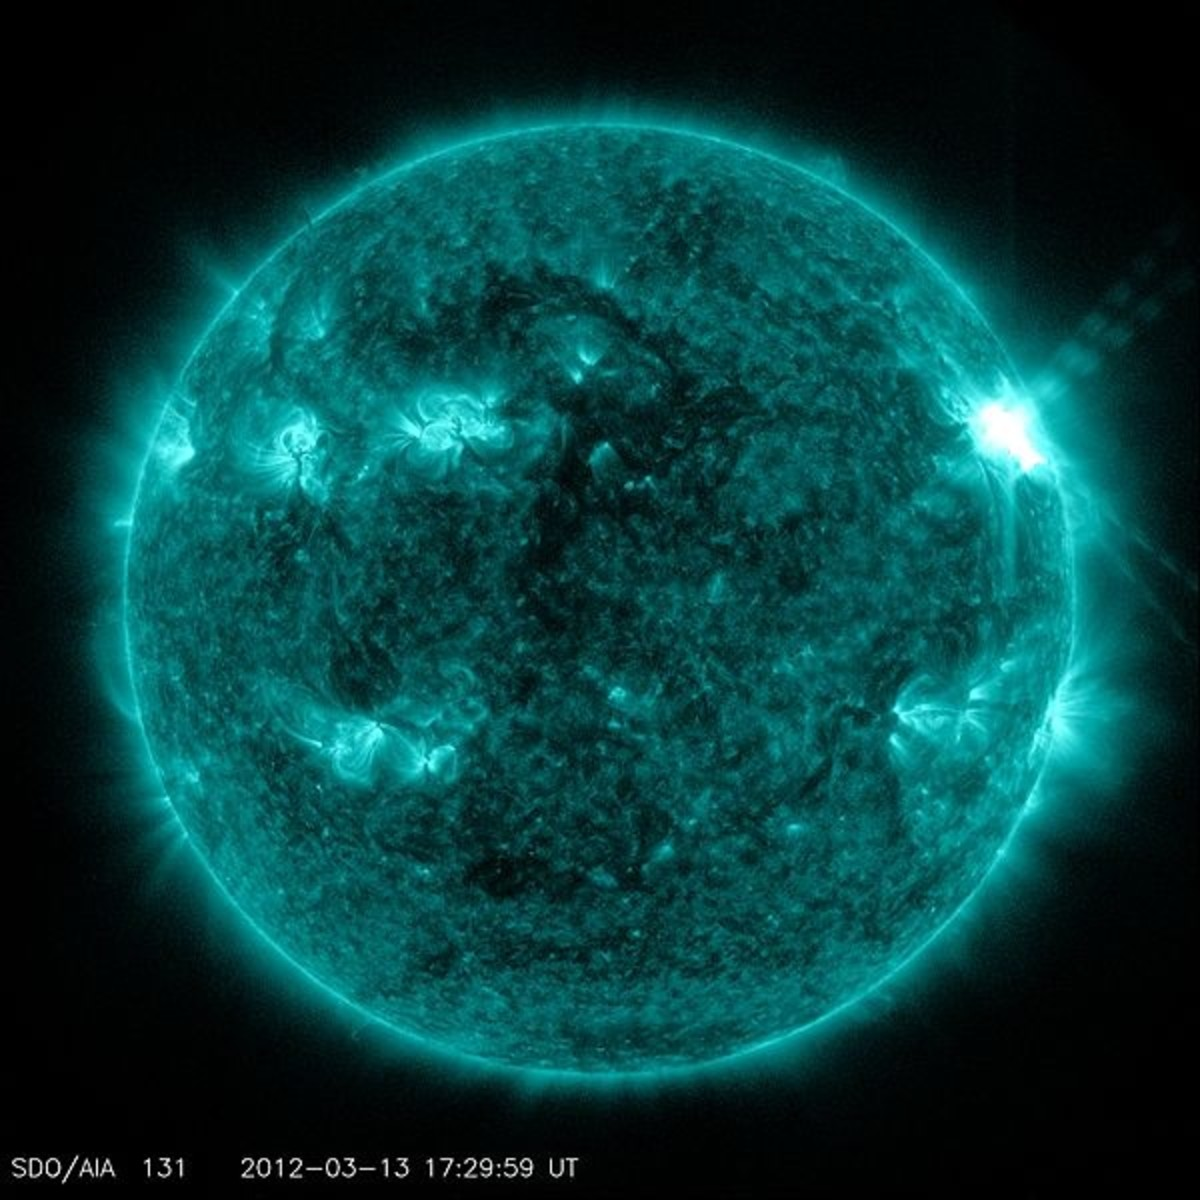 Seen through special filters, solar flares are intense bursts of radioactivity closely associated with sunspots. Sunspots are caused by variations in the magnetic field.